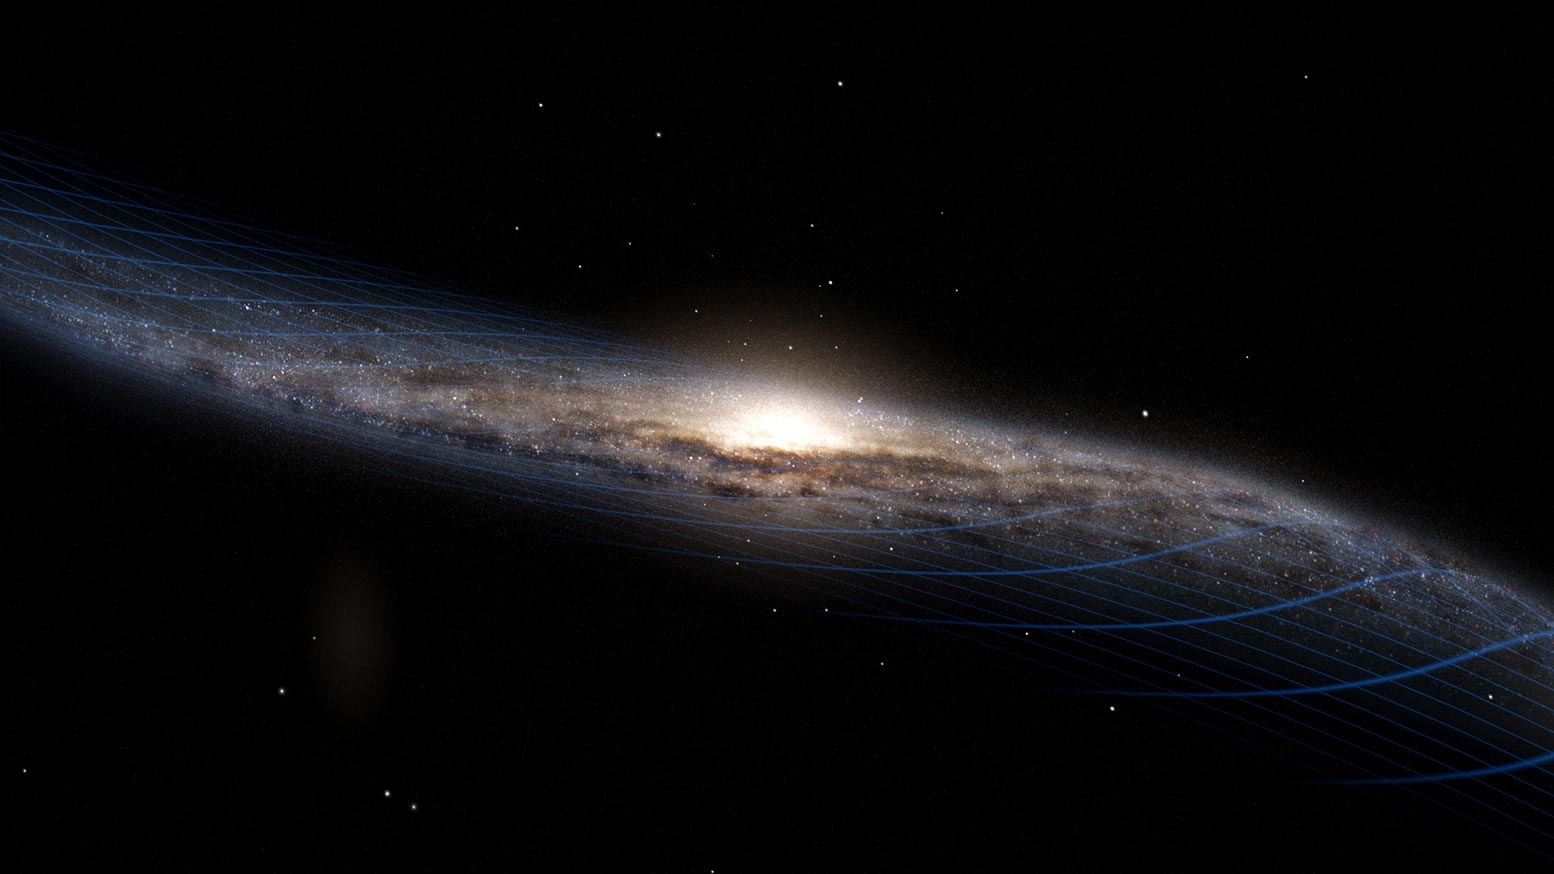 A Galactic Collision Warped the Milky Way